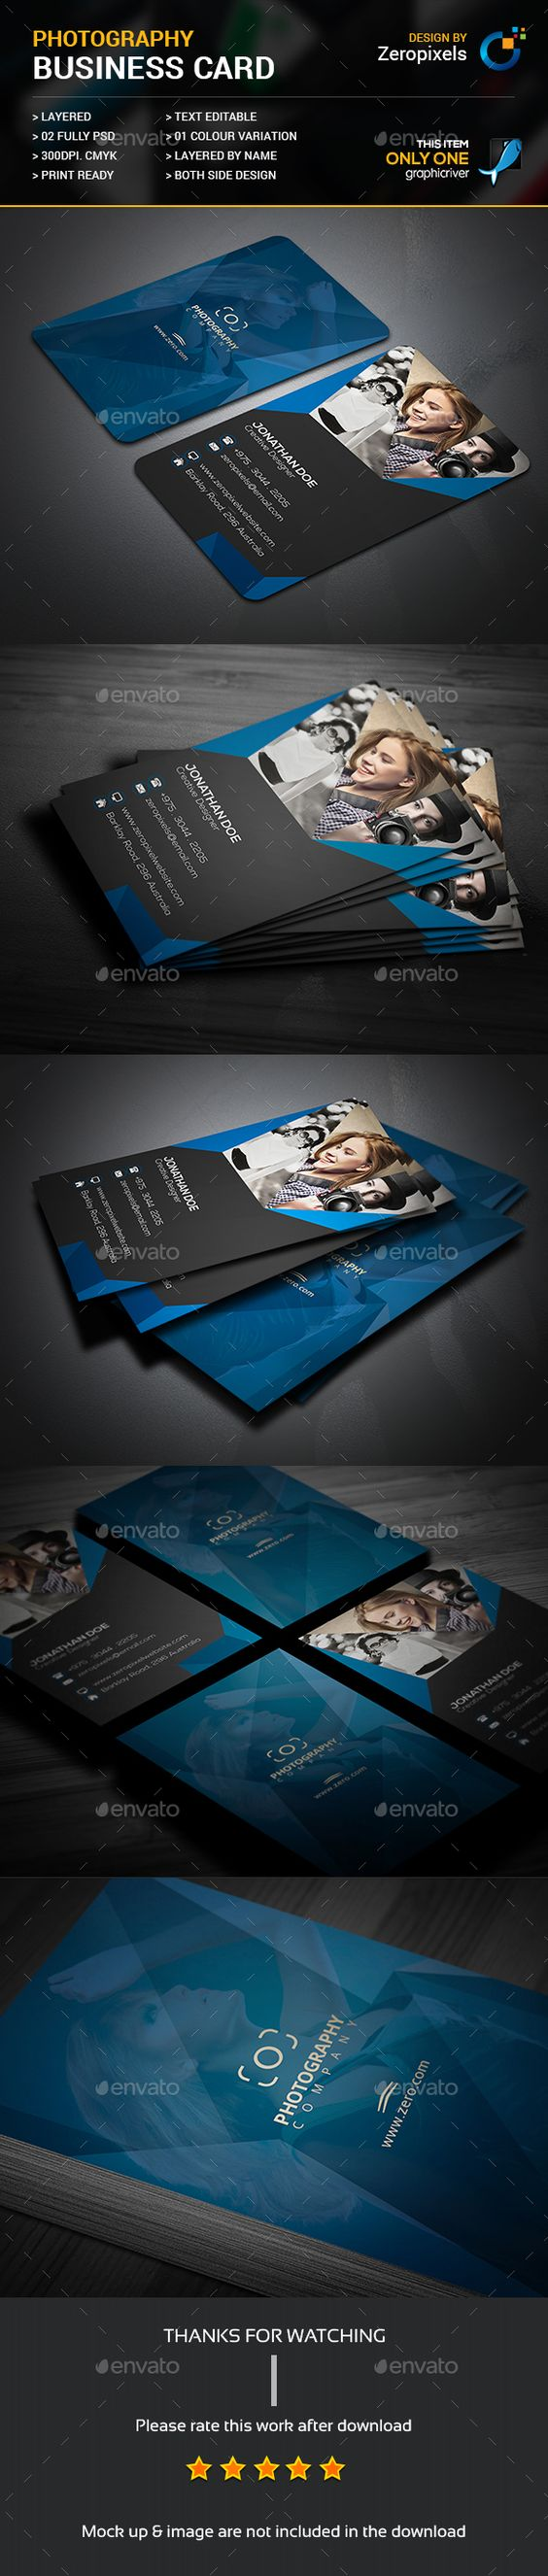 Creative Photographer Business Card Print Ready Designs